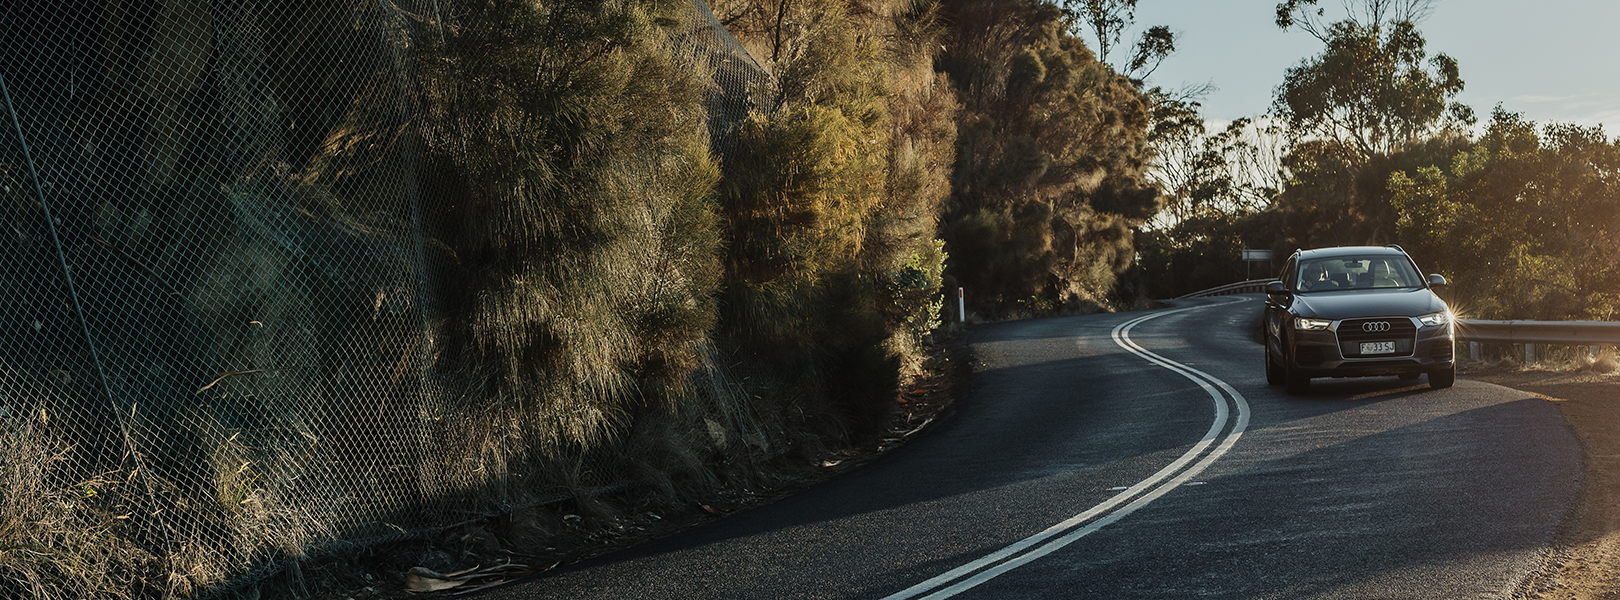 Car driving on windy road on Tasmania's east coast